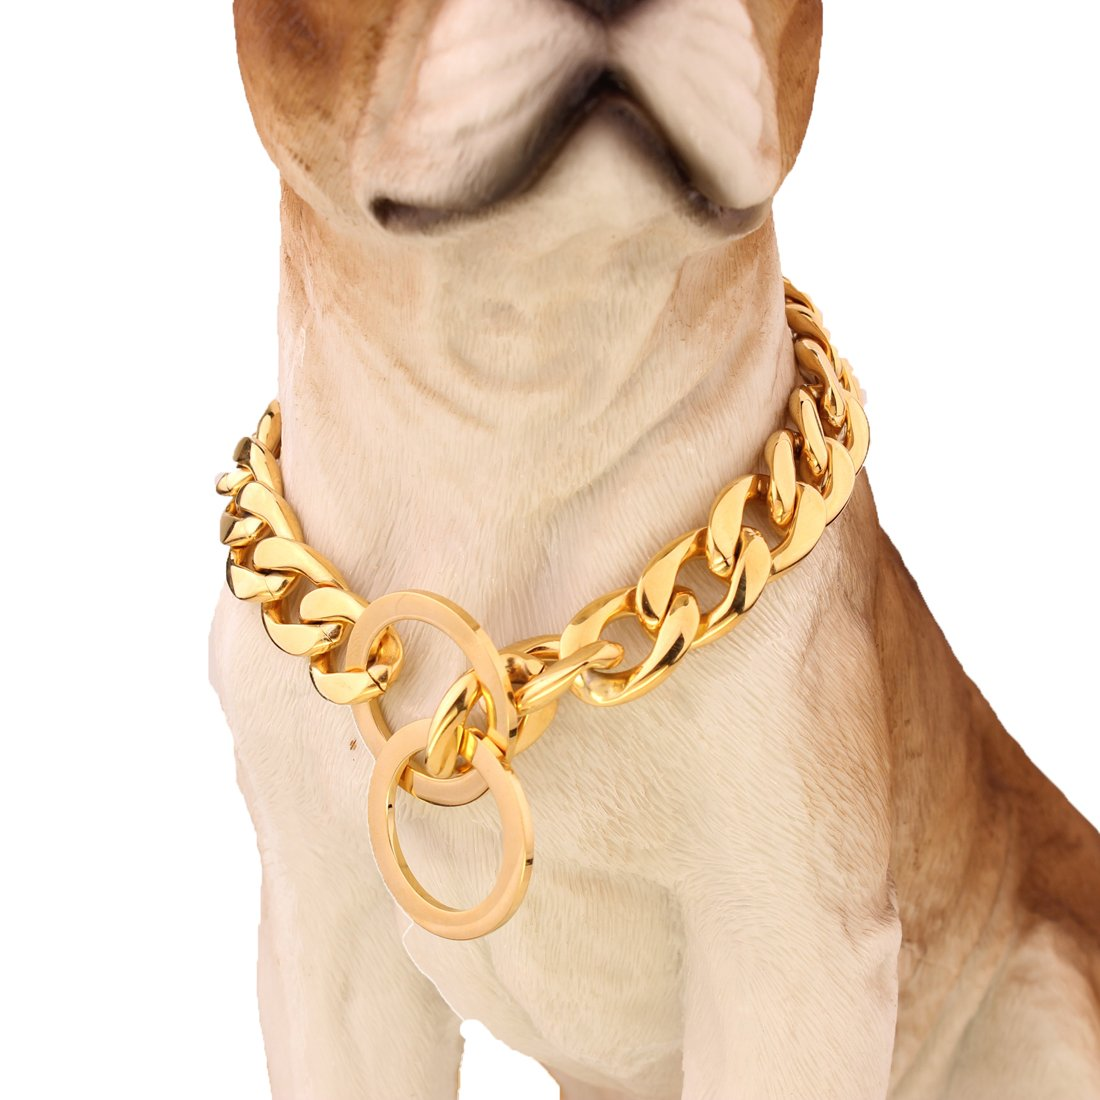 Strong 13/15/19mm Gold Plated Stainless Steel NK Chain Dog Collar Choker Necklace 12-36inch(20inches,15mm)